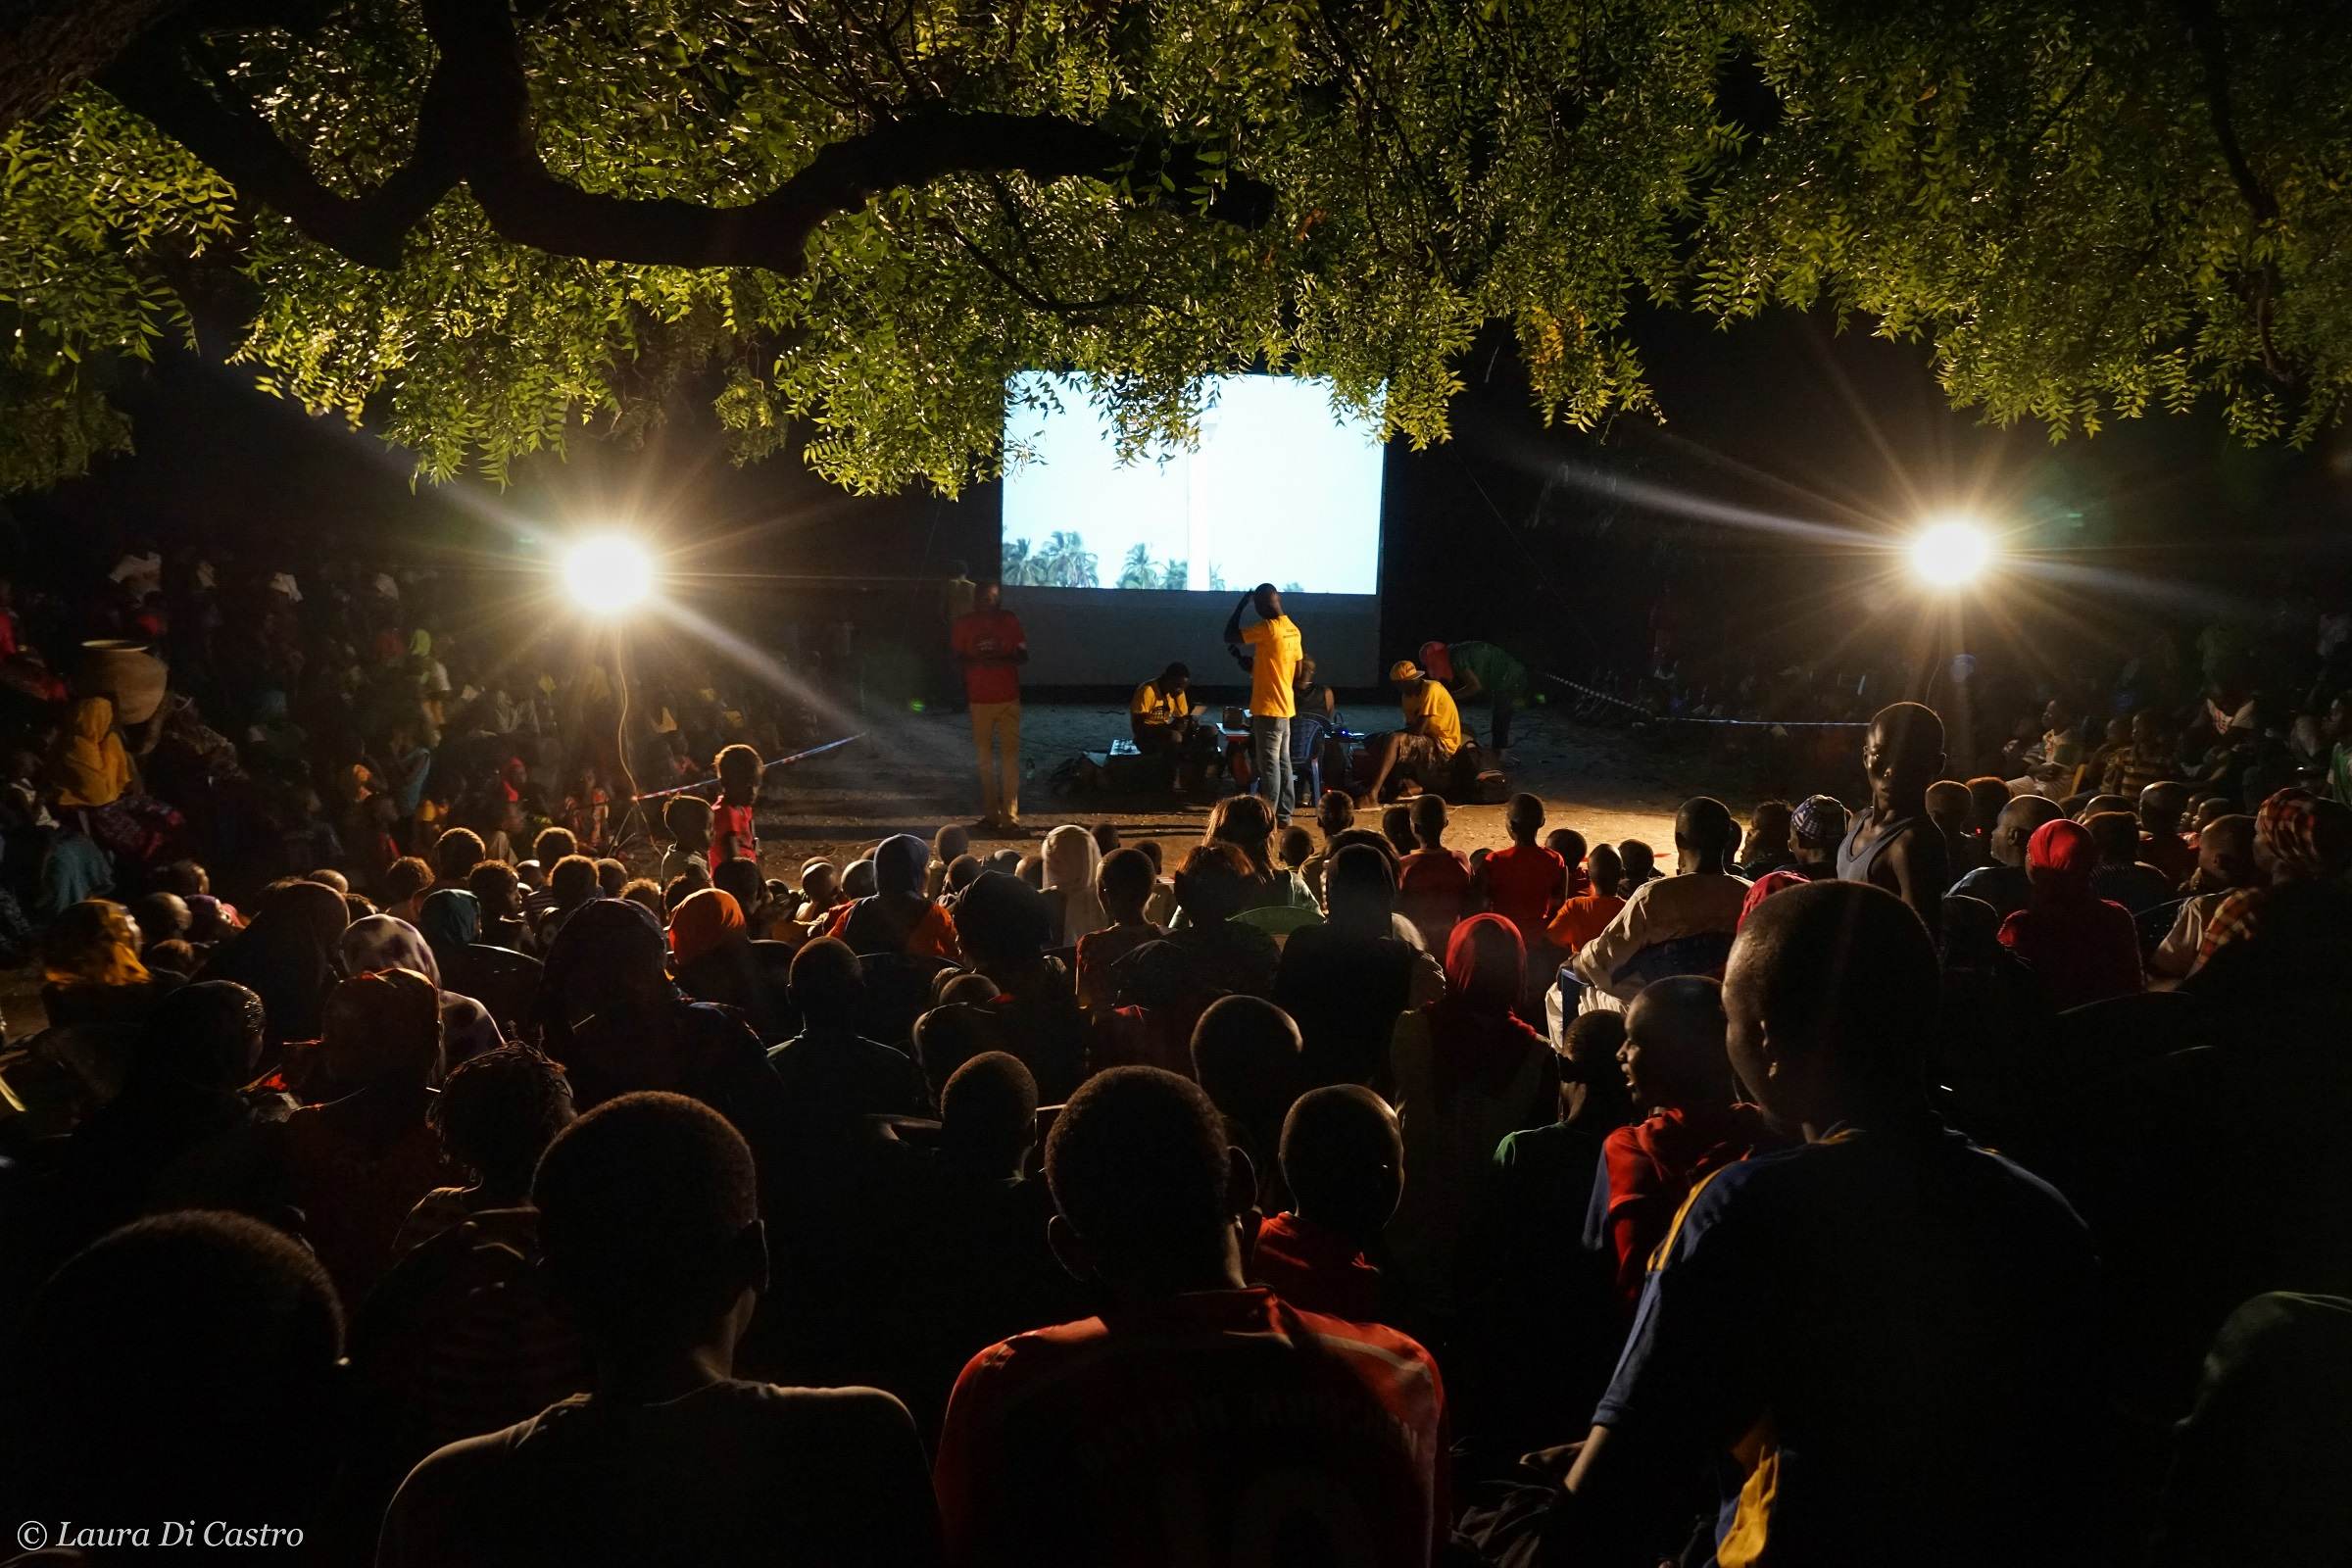 Cinema all'aperto in Africa